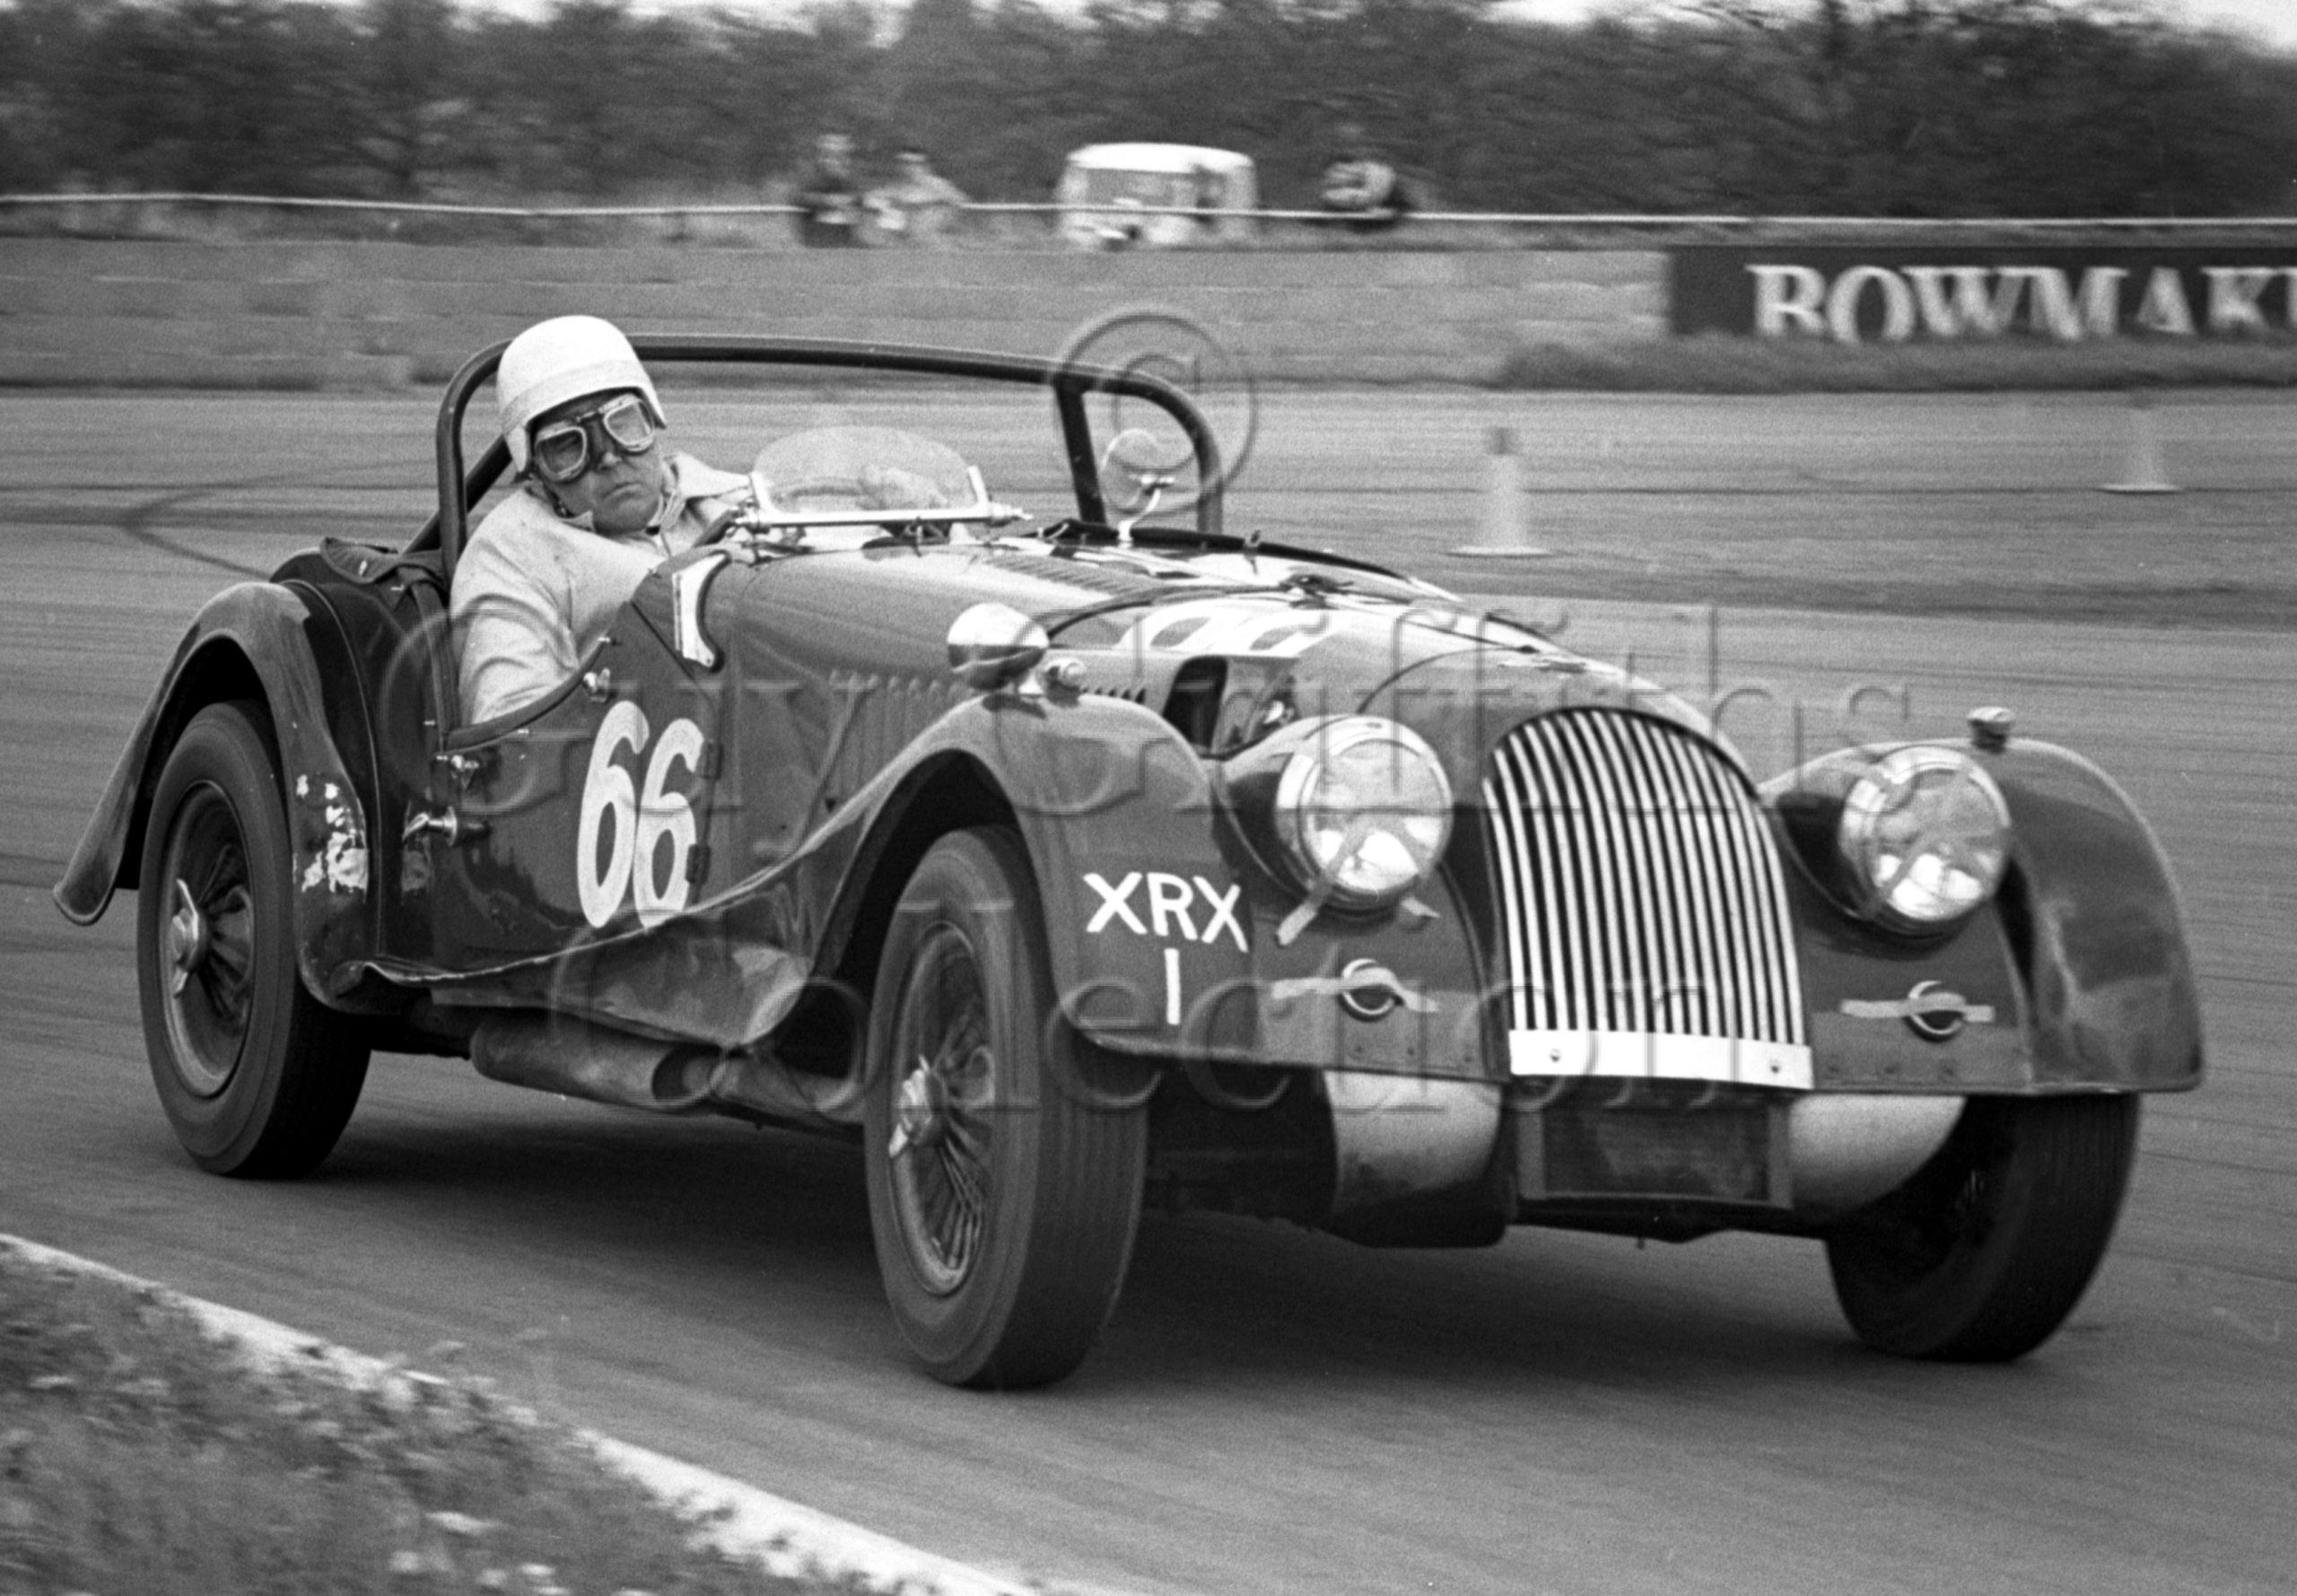 82-526–B-Fielding–Morgan-Plus-4–Silverstone–09-05-1964.jpg - Guy Griffiths Collection